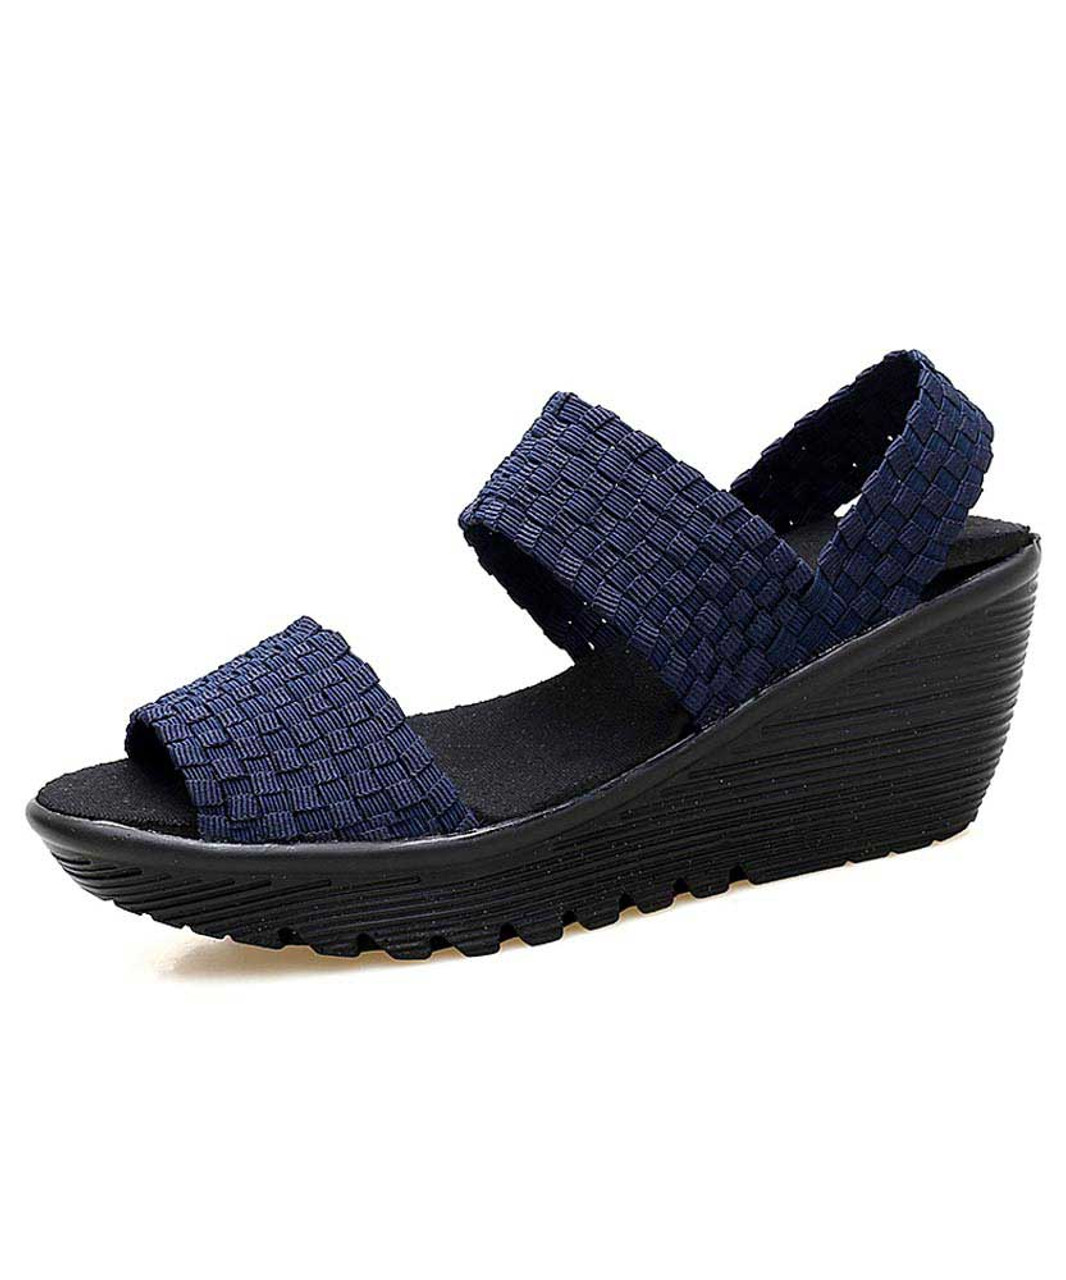 a34fad7fb Navy weave check slip on shoe wedge sandal   Womens wedge sandals ...